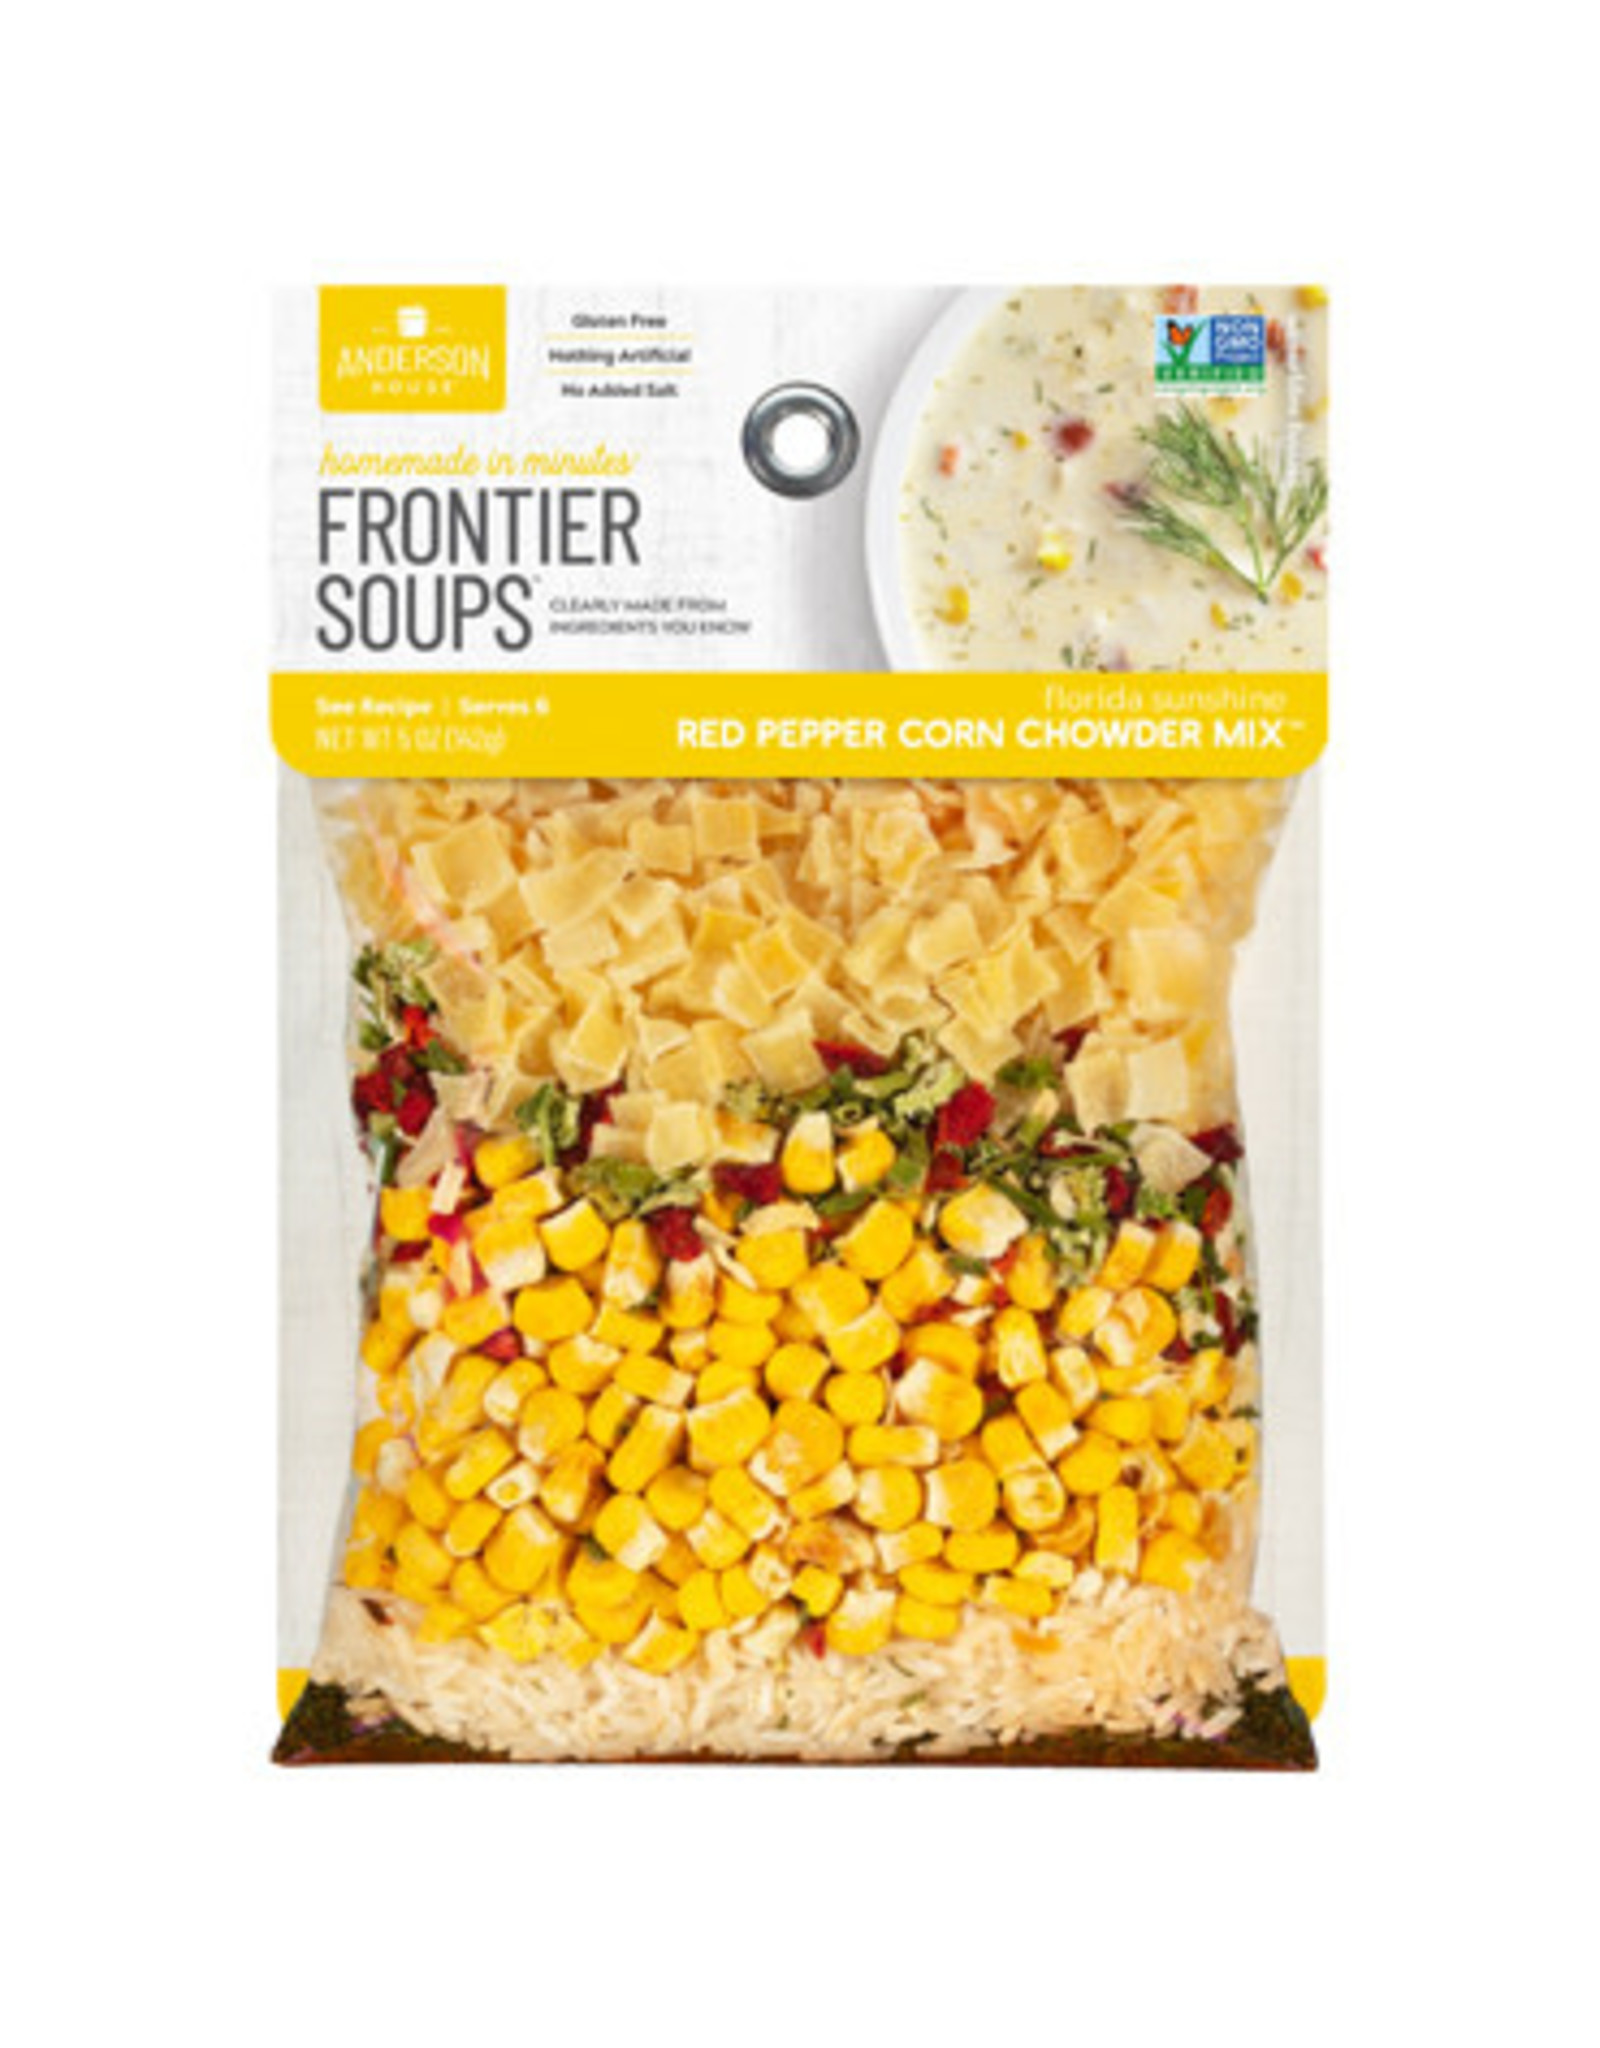 Frontier Soups FLORIDA SUNSHINE RED PEPPER CORN CHOWDER